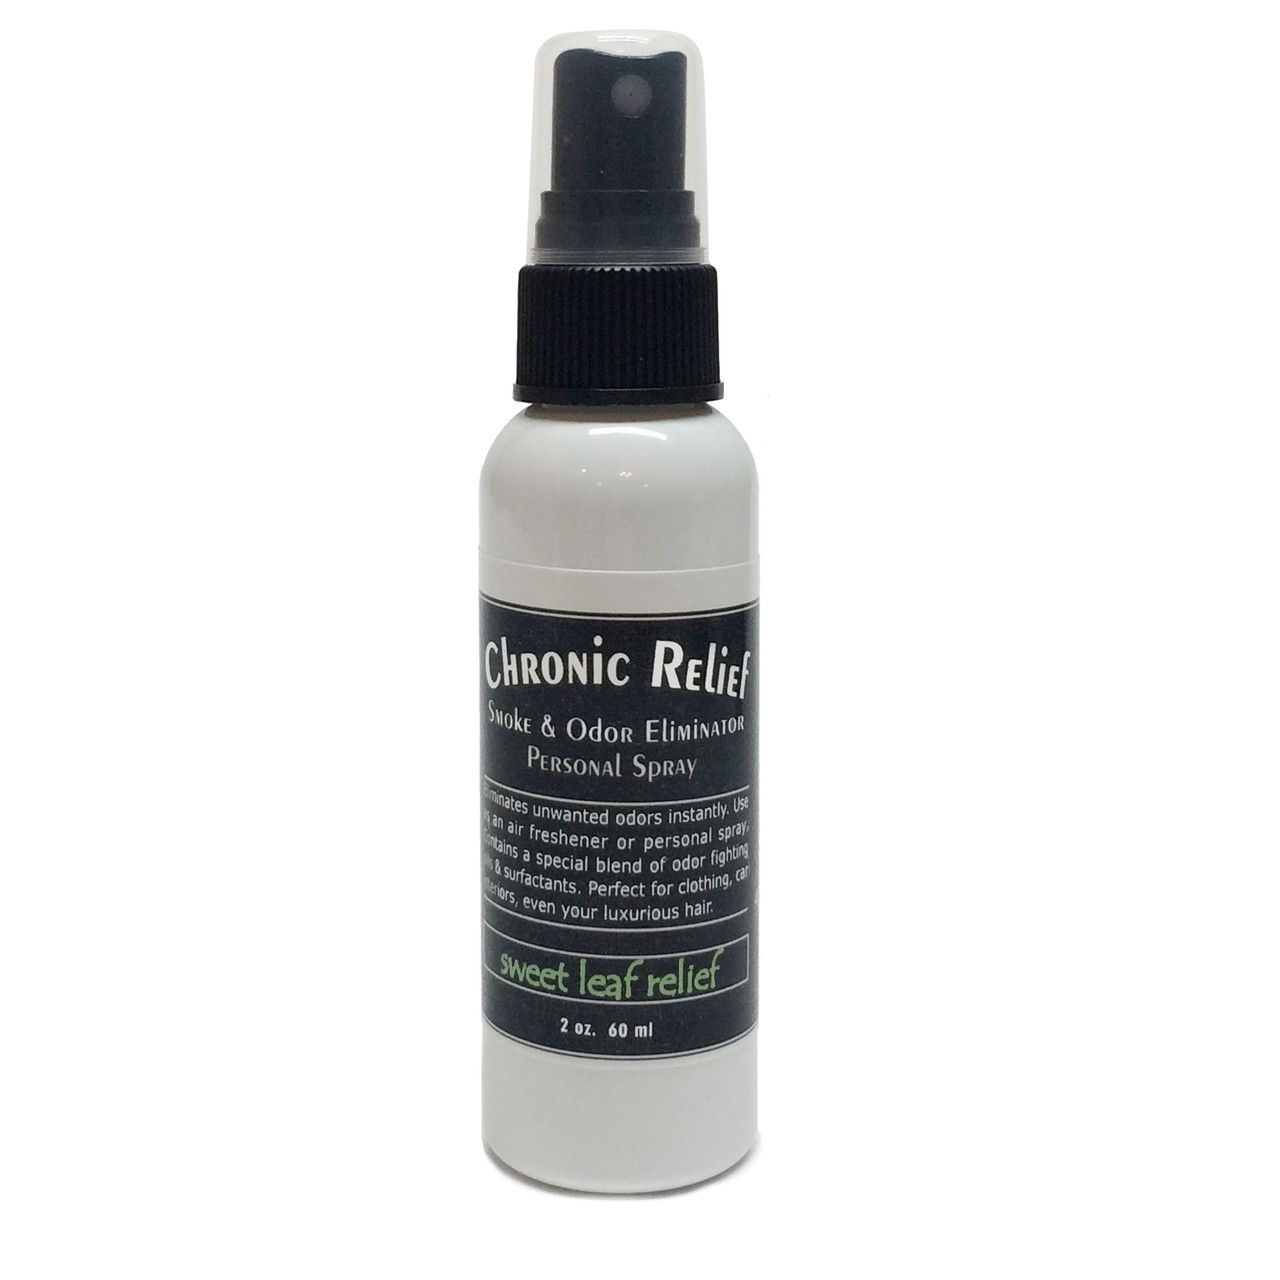 Chronic Relief Smoke and Odor Eliminator - Sweet Leaf Relief 2oz